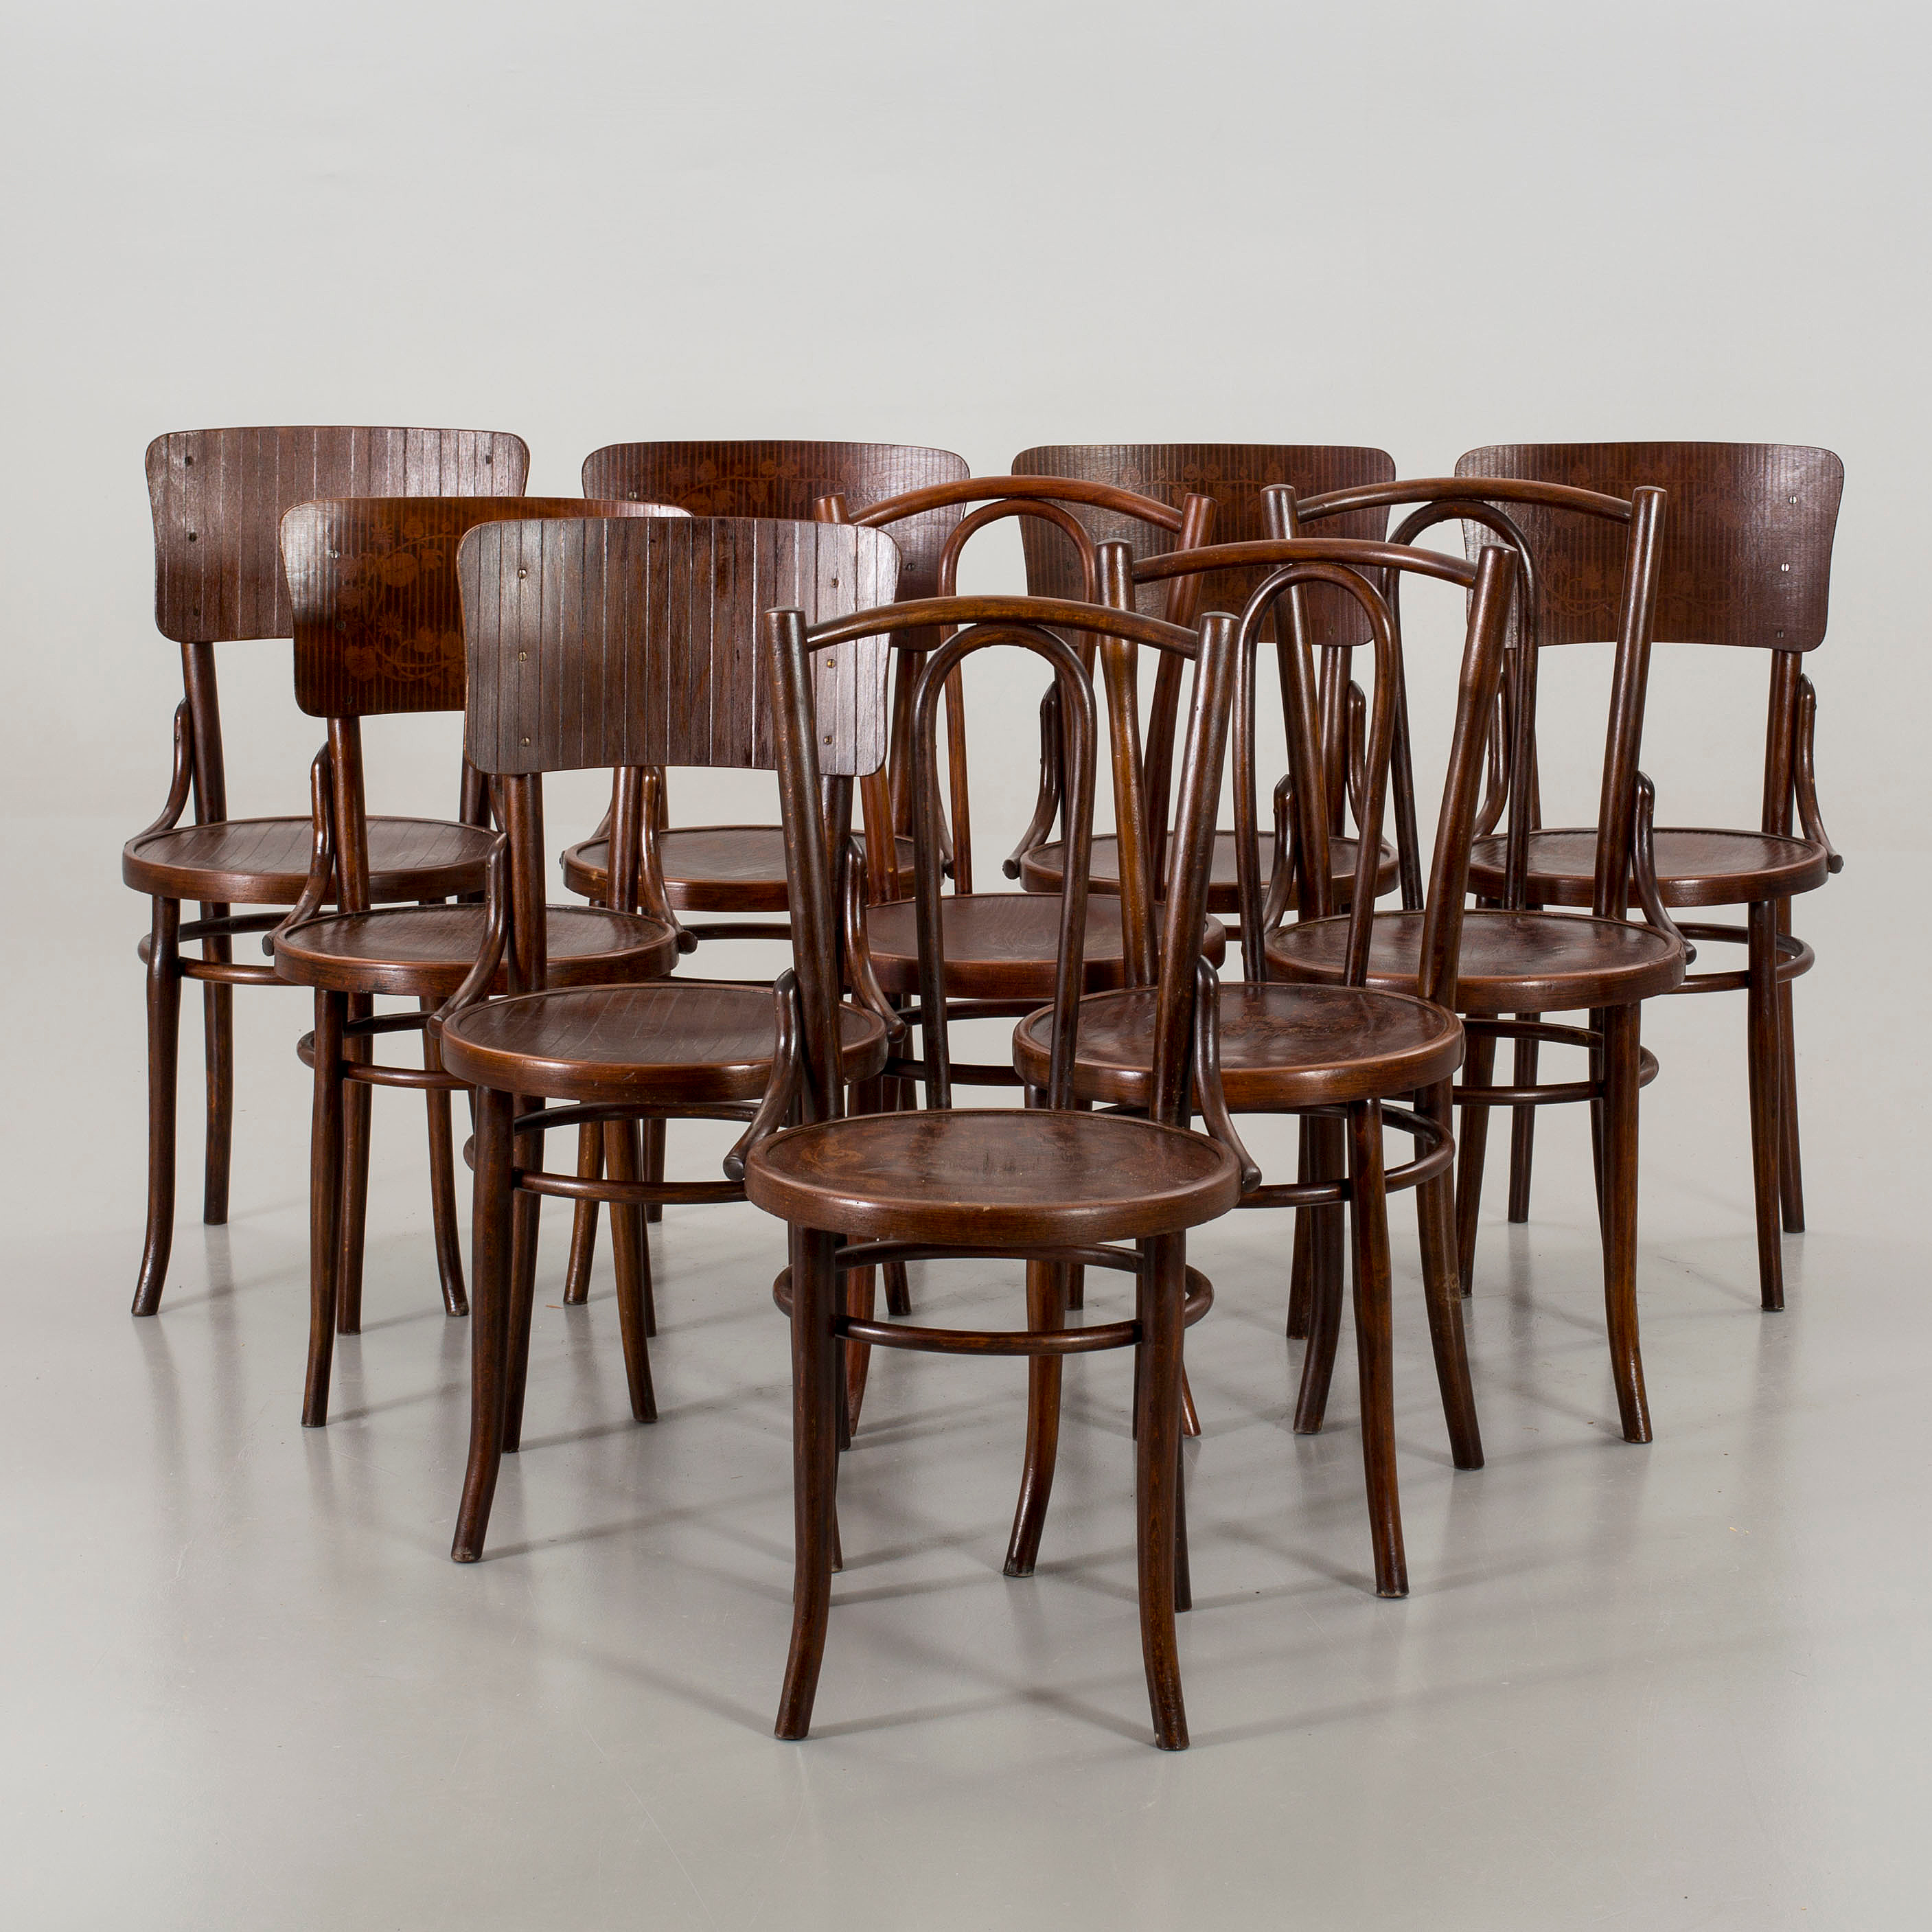 & Ten chairs Thonet-Mundus. - Bukowskis